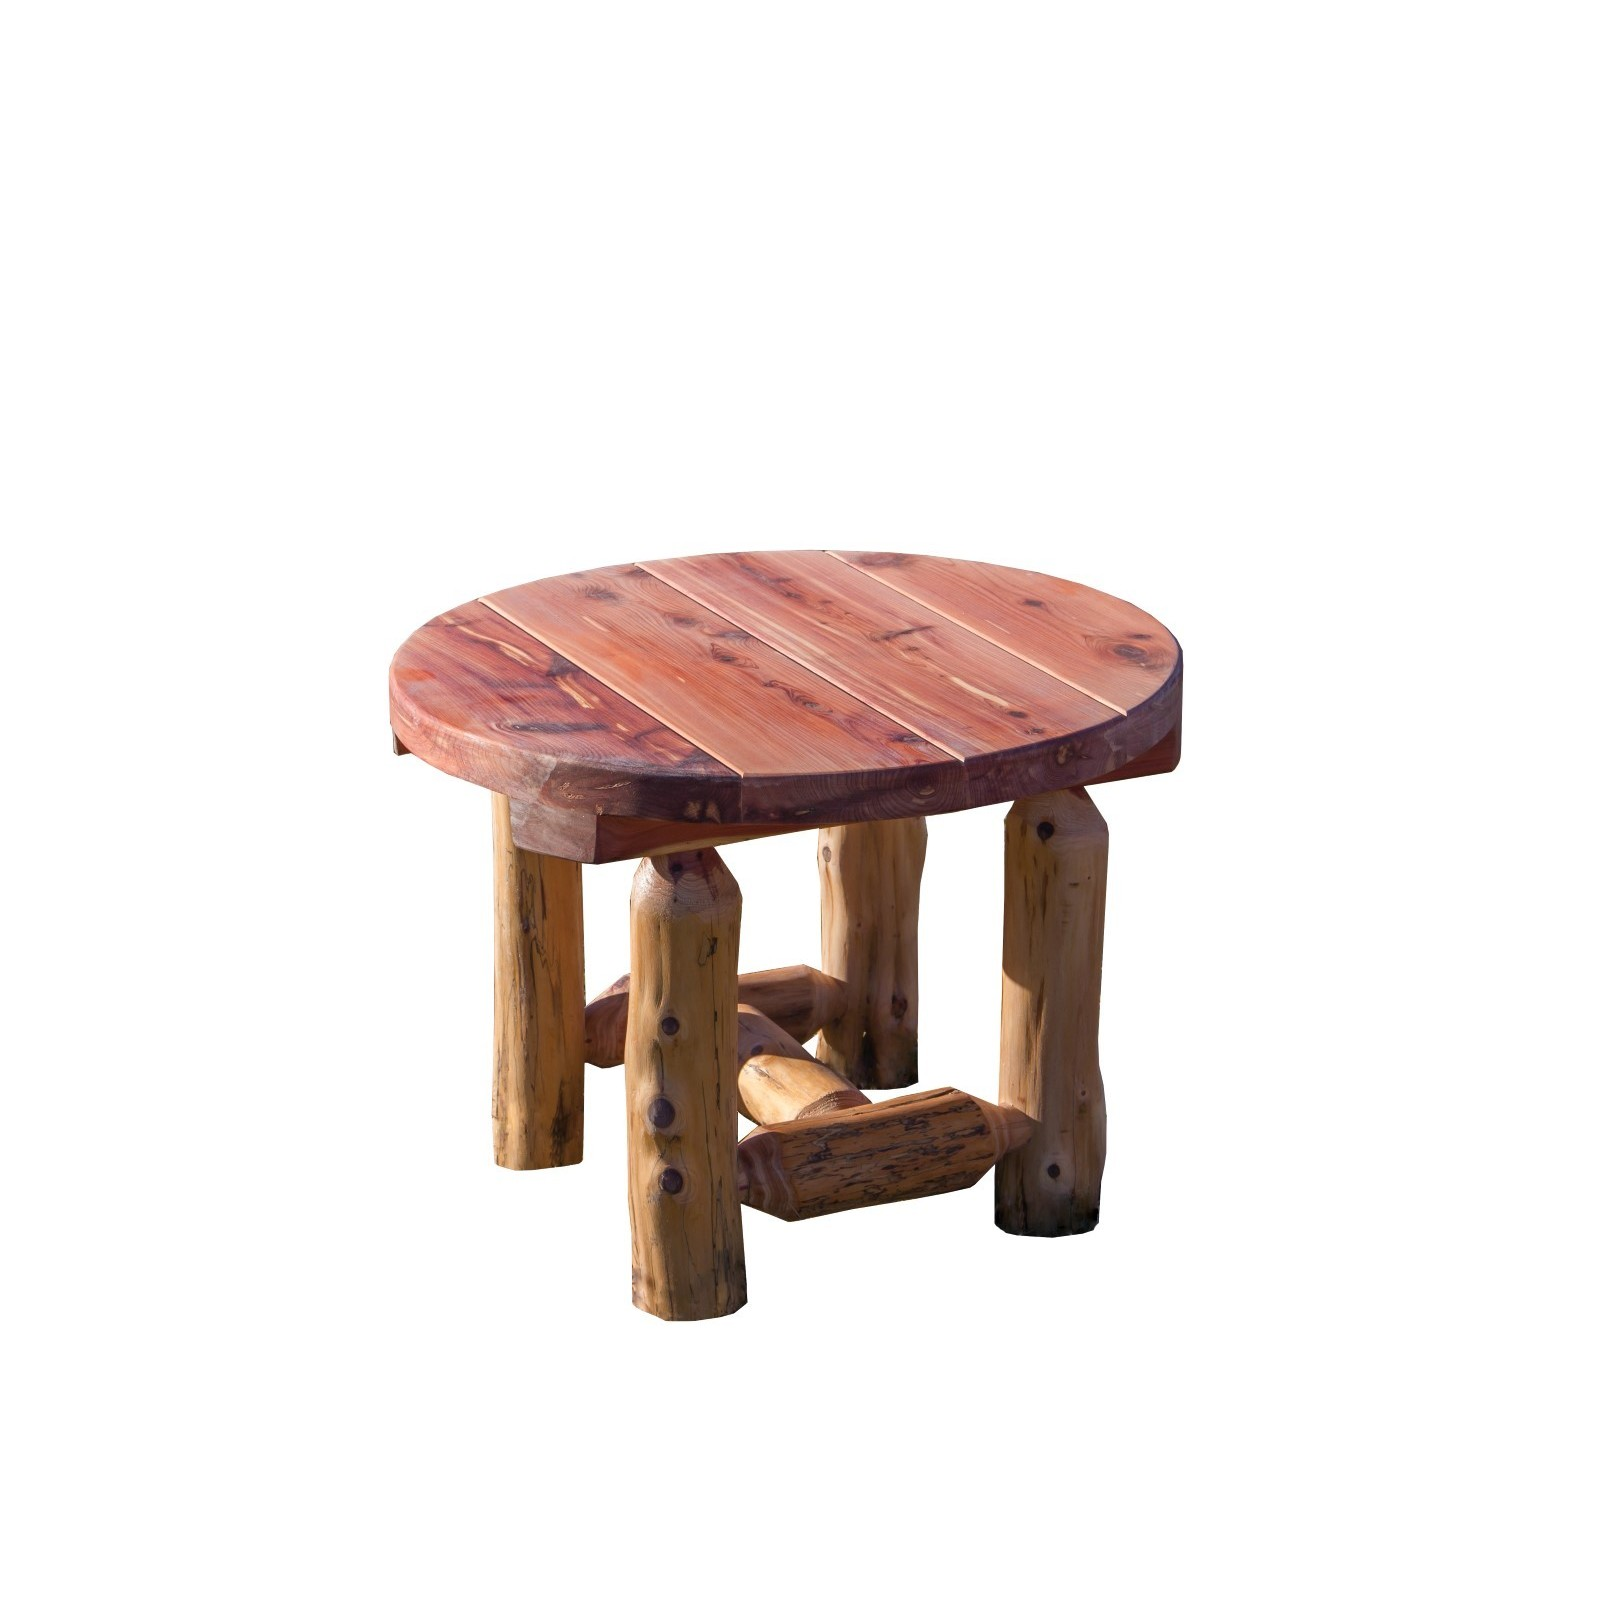 rustic red cedar log outdoor round side table amish made accent free shipping today small foldable coffee ethan allen vintage plastic tables pottery barn hudson furniture nate